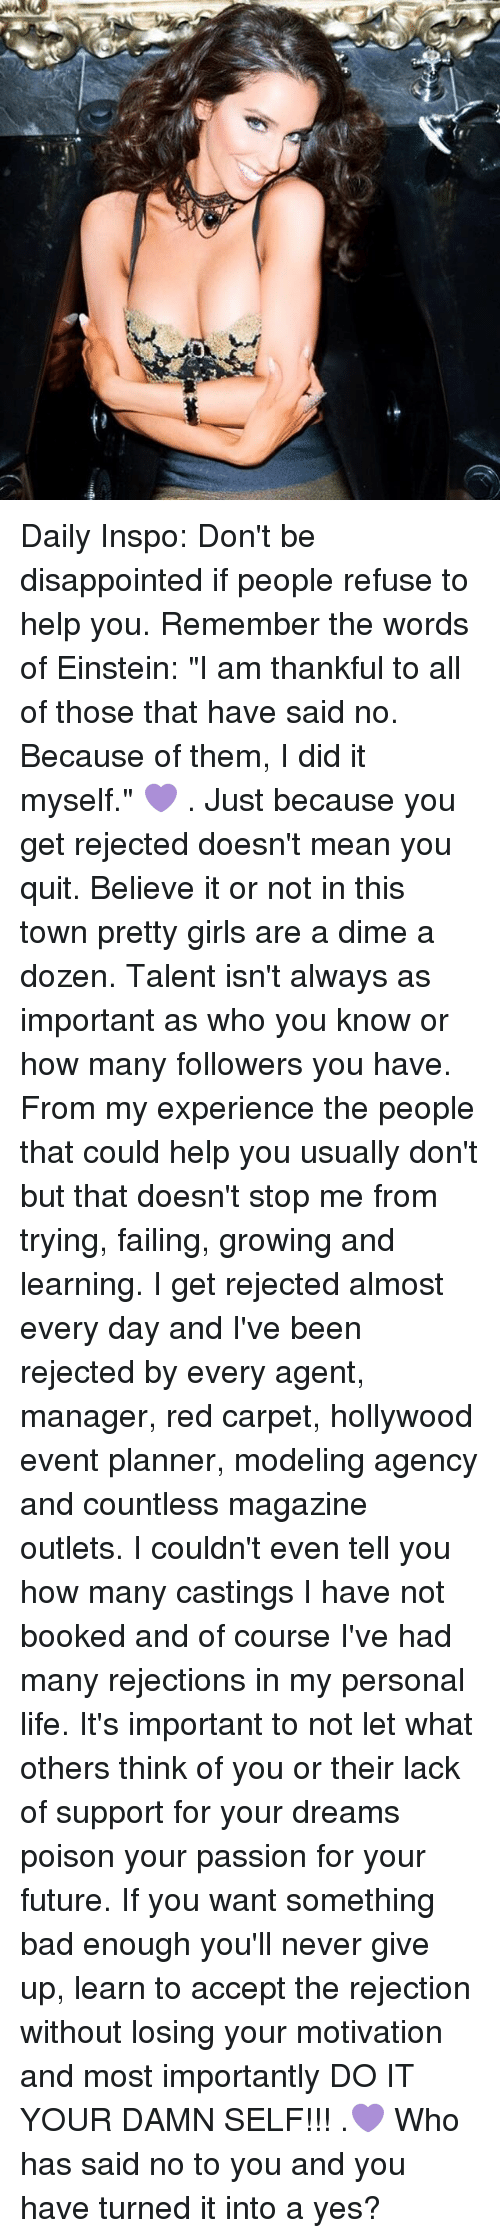 """Bad, Disappointed, and Future: 1444m Daily Inspo: Don't be disappointed if people refuse to help you. Remember the words of Einstein: """"I am thankful to all of those that have said no. Because of them, I did it myself."""" 💜 . Just because you get rejected doesn't mean you quit. Believe it or not in this town pretty girls are a dime a dozen. Talent isn't always as important as who you know or how many followers you have. From my experience the people that could help you usually don't but that doesn't stop me from trying, failing, growing and learning. I get rejected almost every day and I've been rejected by every agent, manager, red carpet, hollywood event planner, modeling agency and countless magazine outlets. I couldn't even tell you how many castings I have not booked and of course I've had many rejections in my personal life. It's important to not let what others think of you or their lack of support for your dreams poison your passion for your future. If you want something bad enough you'll never give up, learn to accept the rejection without losing your motivation and most importantly DO IT YOUR DAMN SELF!!! .💜 Who has said no to you and you have turned it into a yes?"""